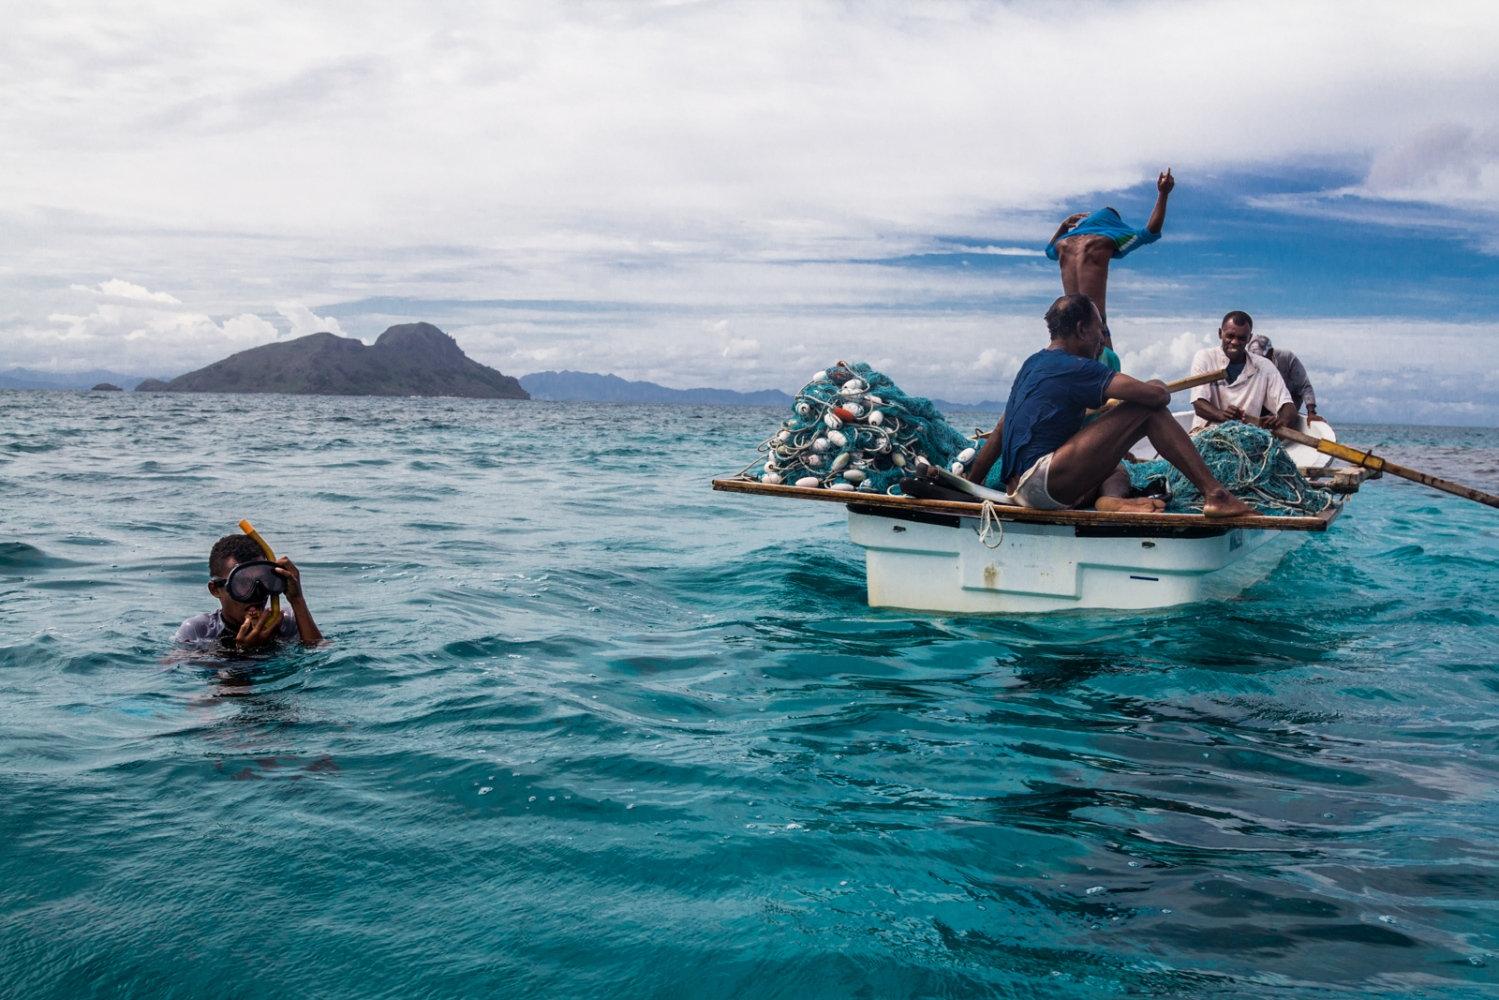 Fijian fisherman on Fiji's Great Sea Reef begin to get ready to dive under to catch their source of income and livlihood, fish. As climate change warms the globe, the ocean's temperature rises with it. Coral reefs that sustain fishing communities, like those that these fishermen are from, are dying out due to warming ocean temperatures. Coral reefs are extremely sensitive to temperature variations.